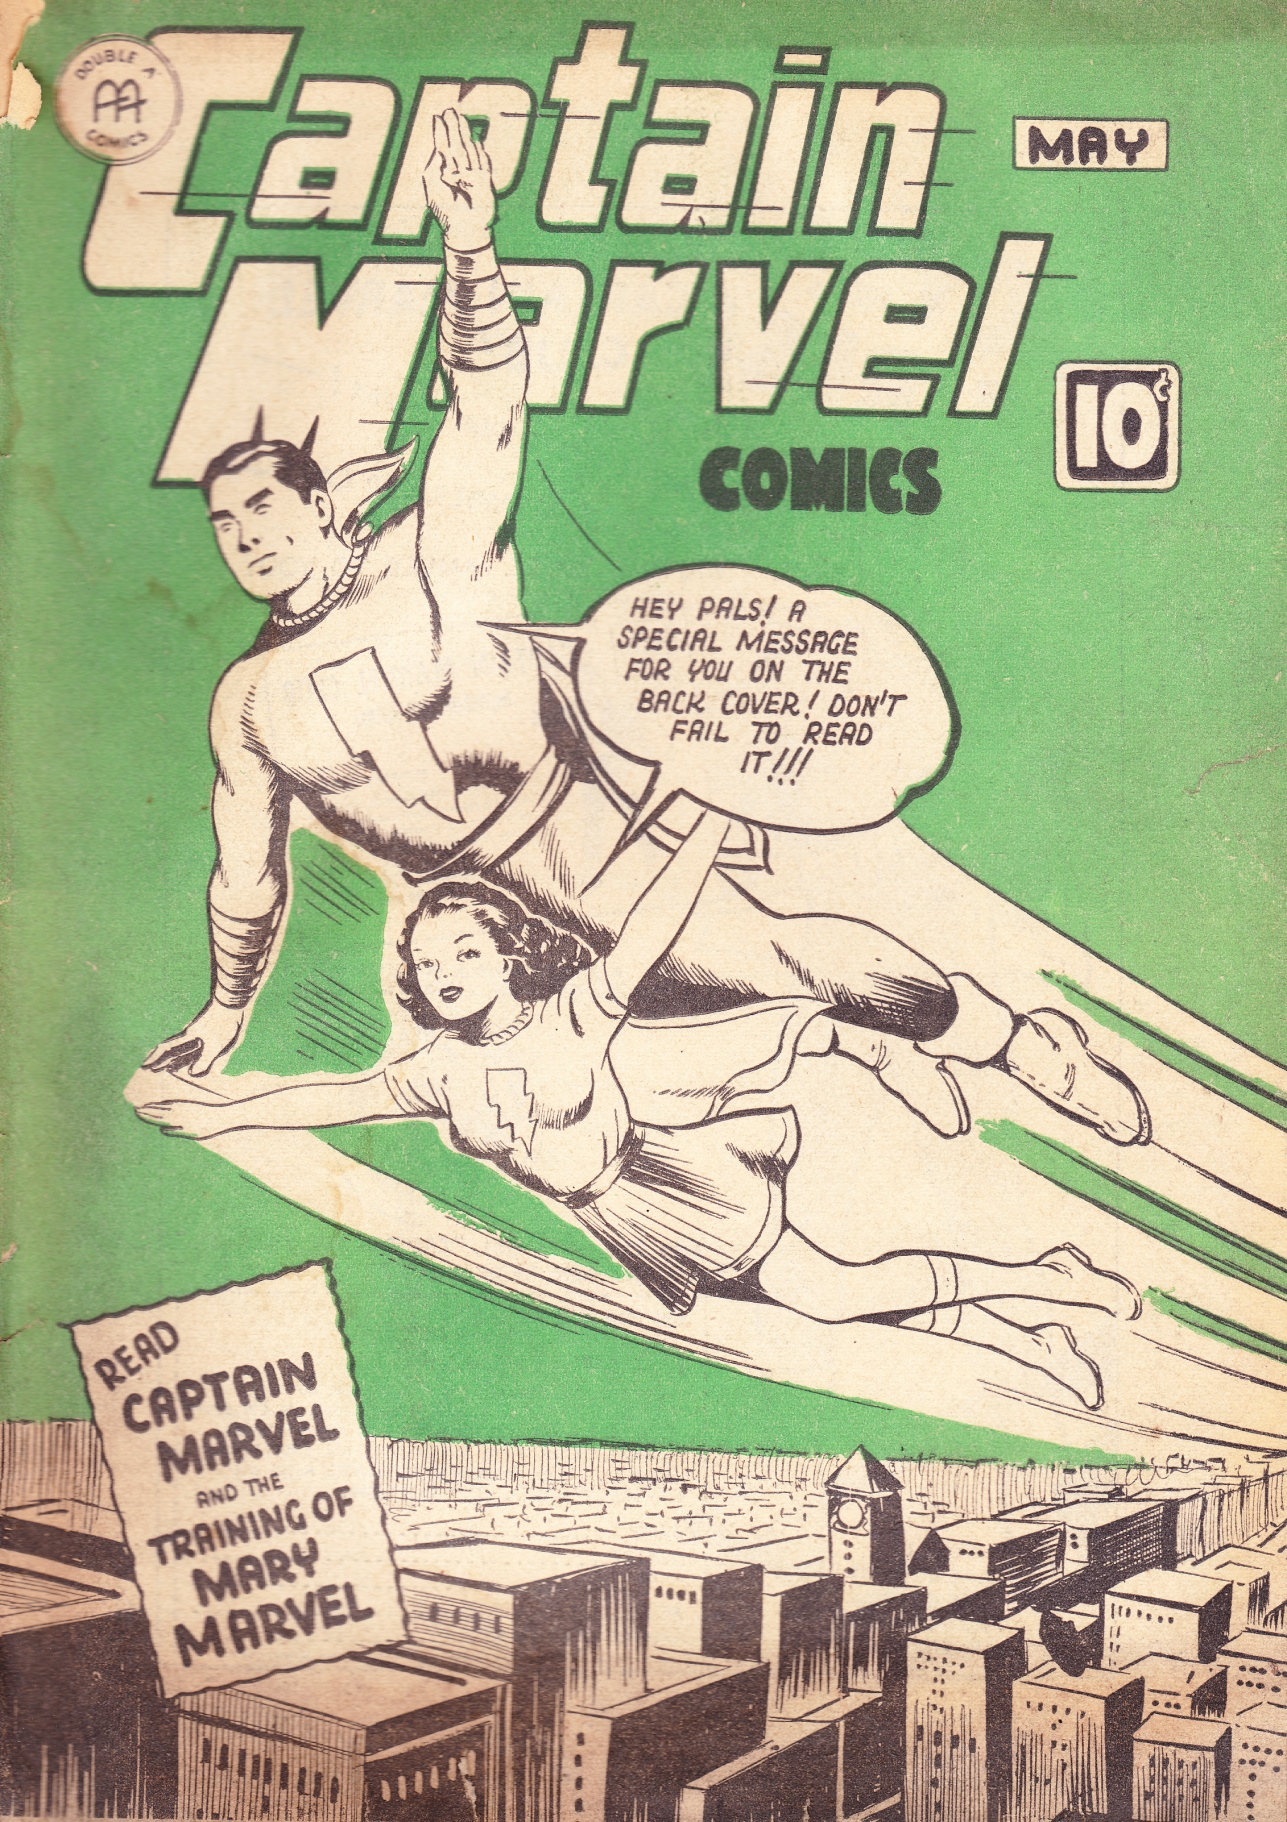 C:\Users\Robert\Documents\CARTOONING ILLUSTRATION ANIMATION\IMAGE COMIC BOOK COVERS\CAPTAIN MARVEL 2-5 May 1943,.jpg